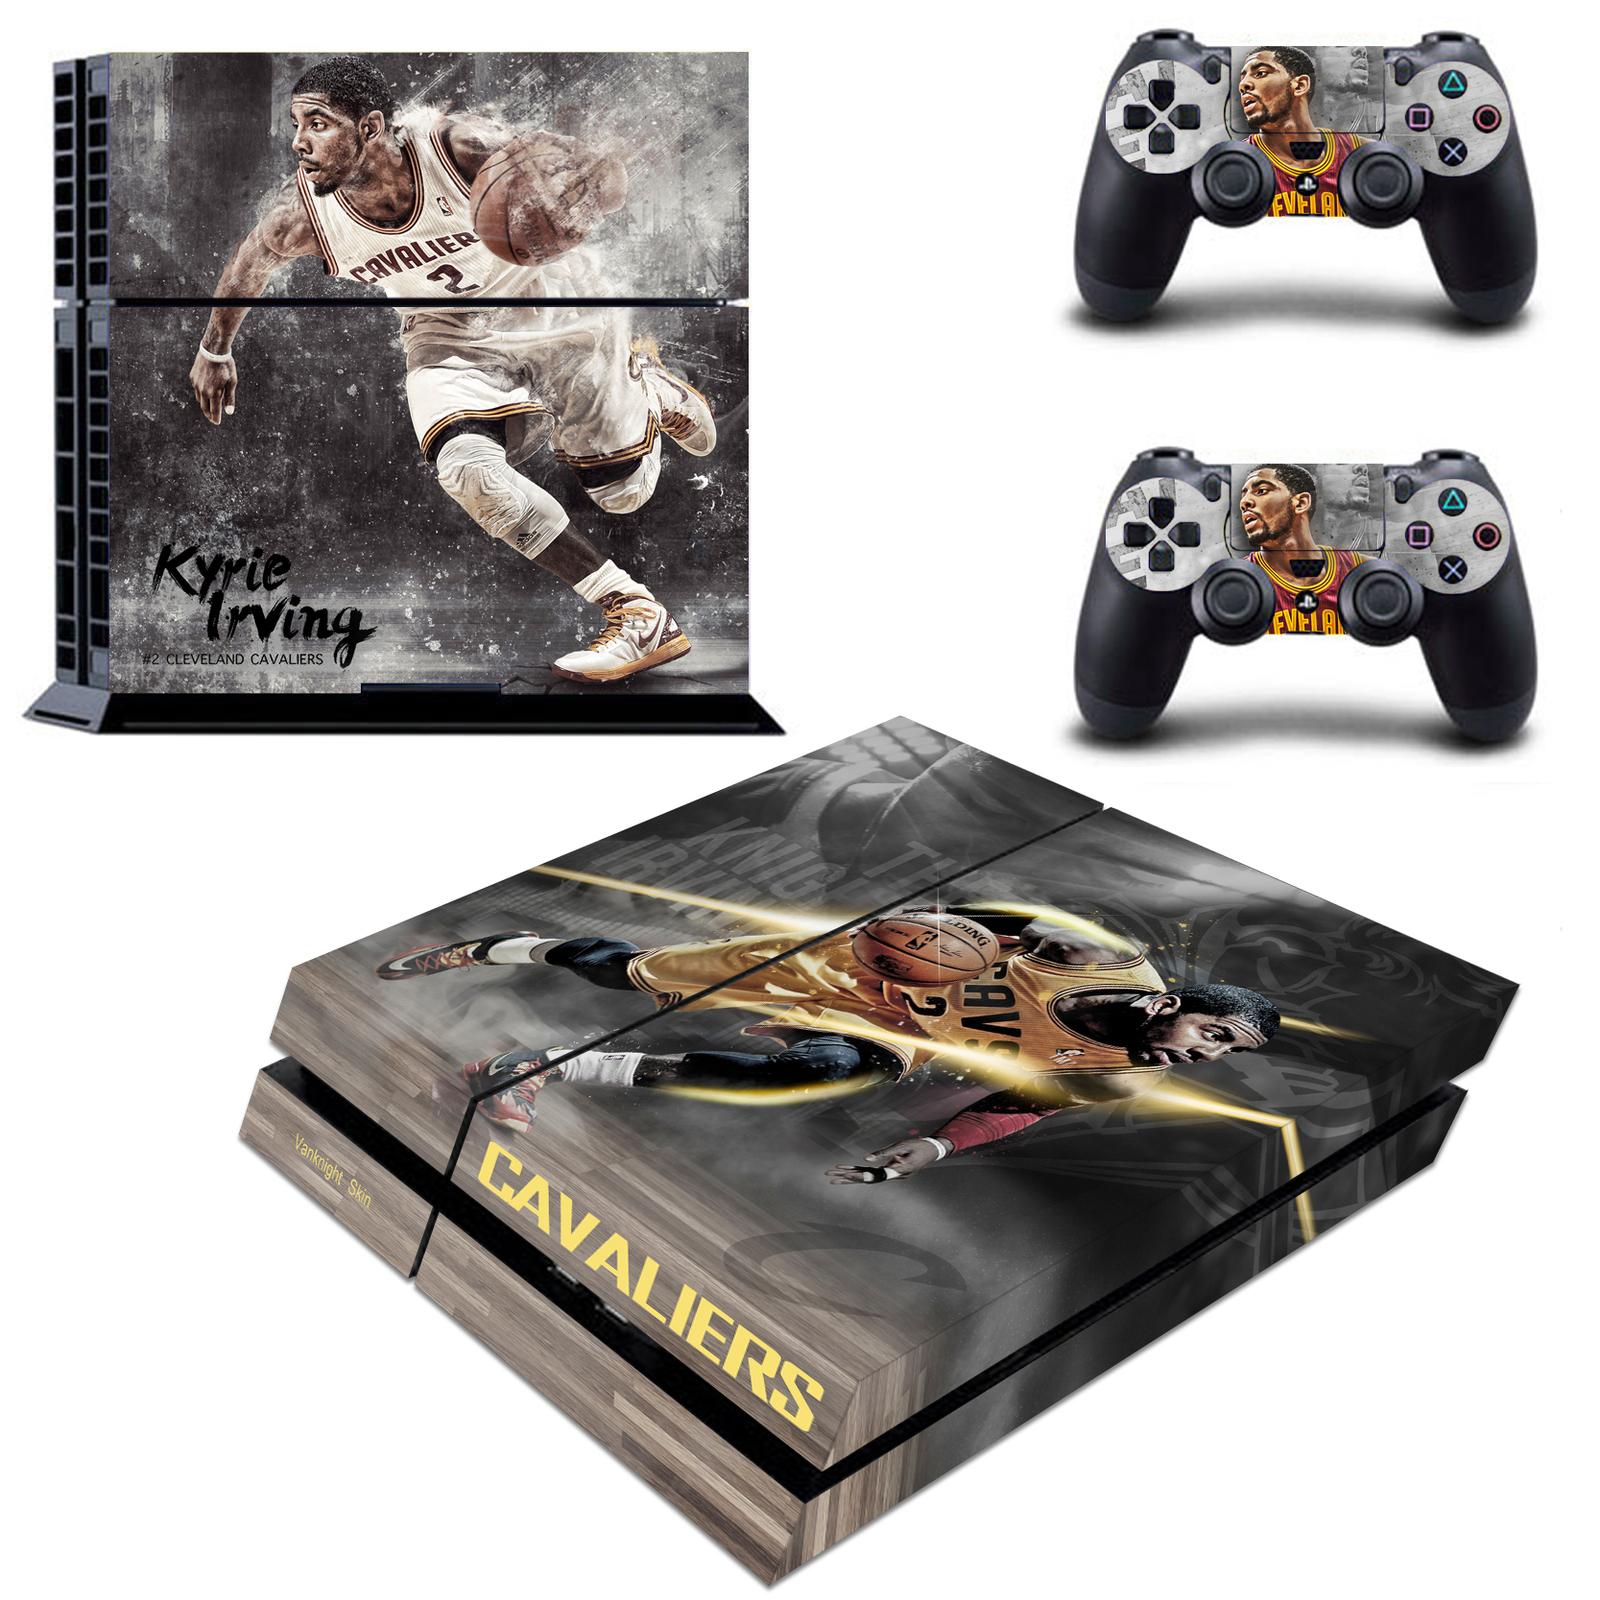 Faceplates, Decals & Stickers Ps4 Pro Console Skin Decal Nba Boston Celtics Vinyl Stickers Decals Covers Wrap Terrific Value